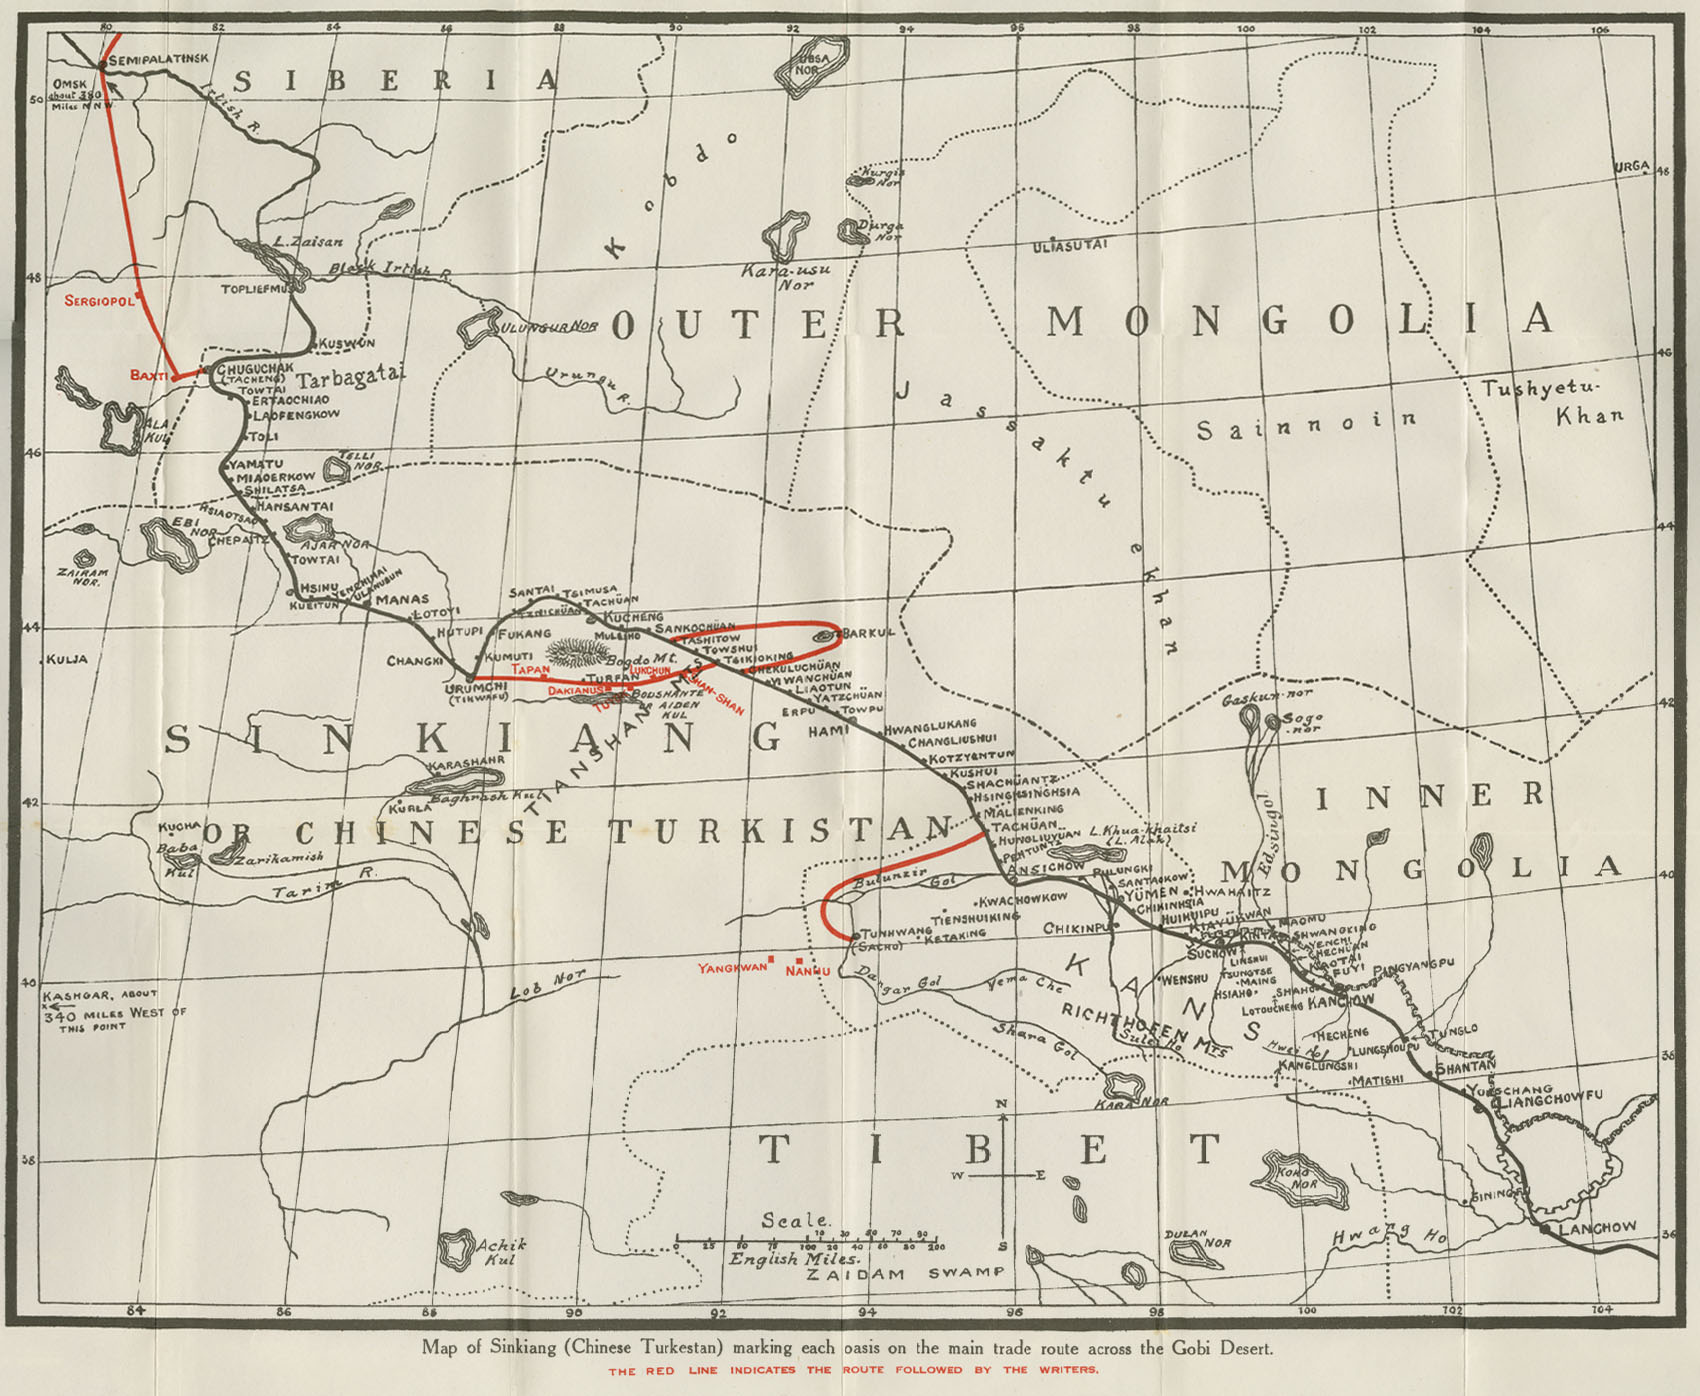 Map of Sinkiang (Chinese Turkestan) marking each oasis on the main trade route across the Gobi Desert 1934